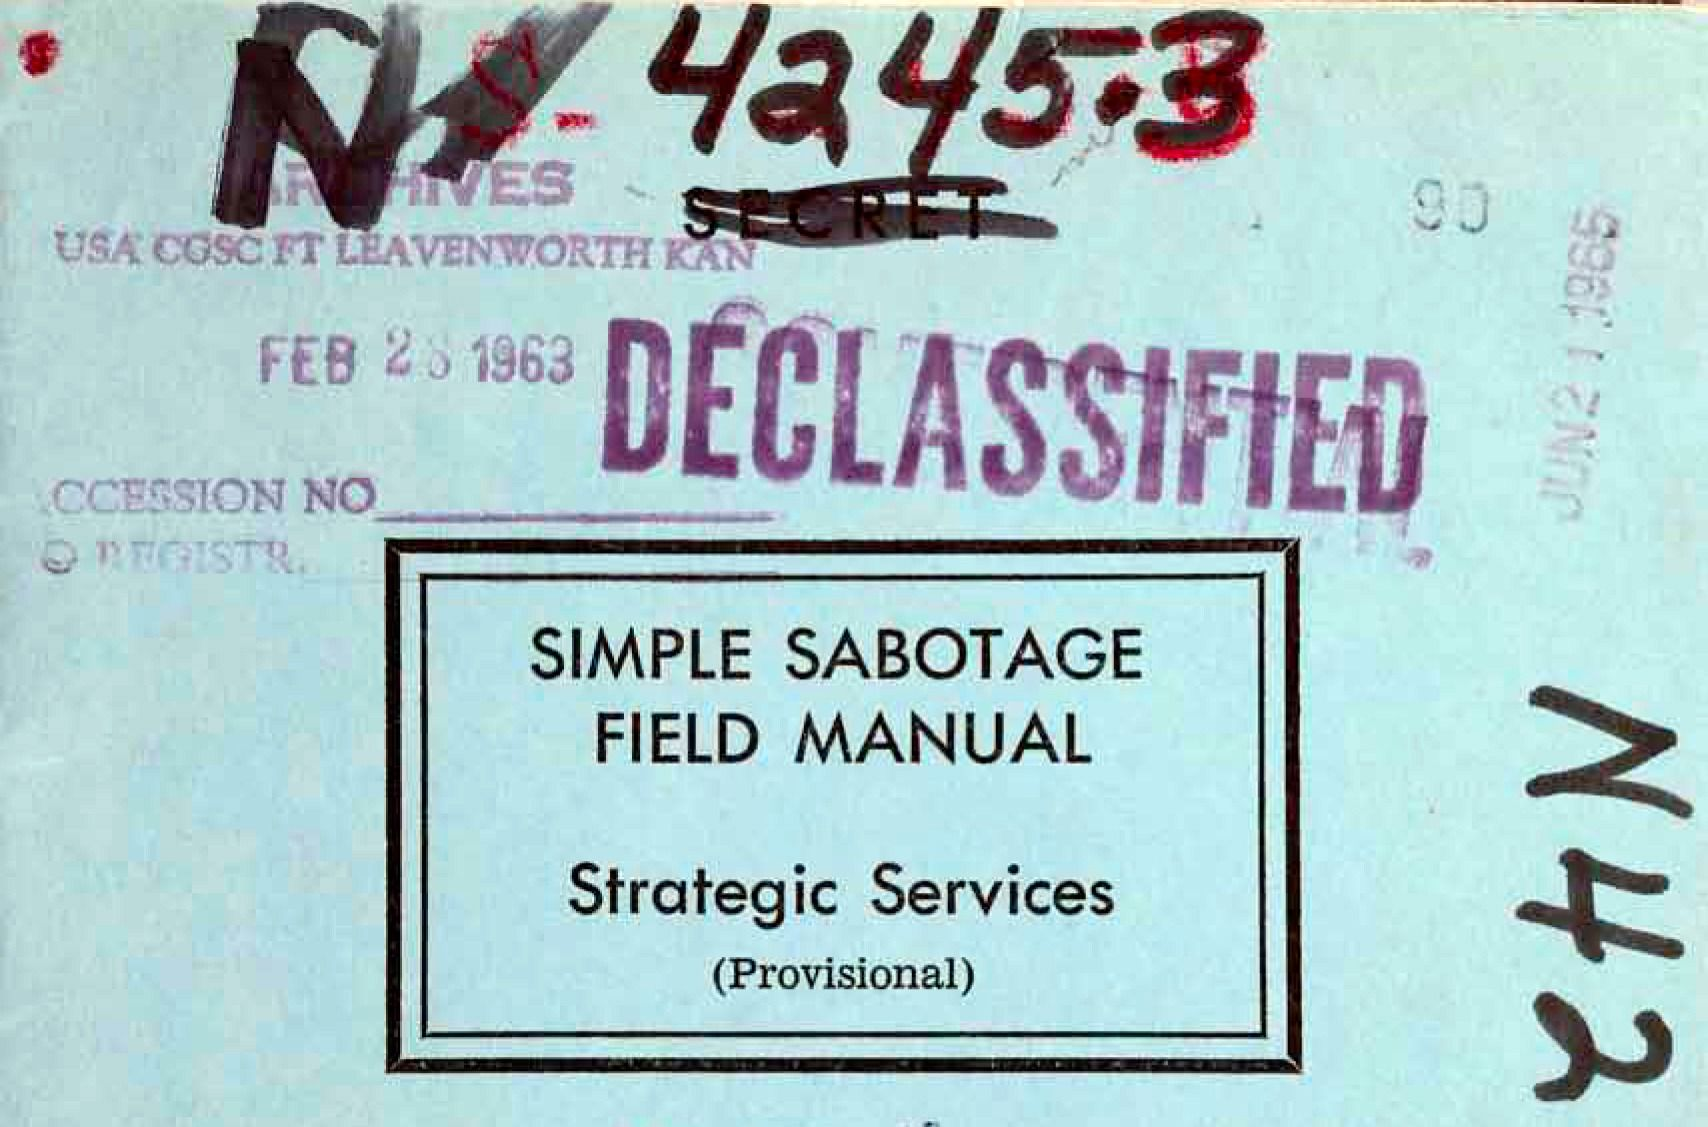 /learning-from-the-oss-destroy-your-organization-by-following-the-simple-sabotage-field-manual-m931330z feature image